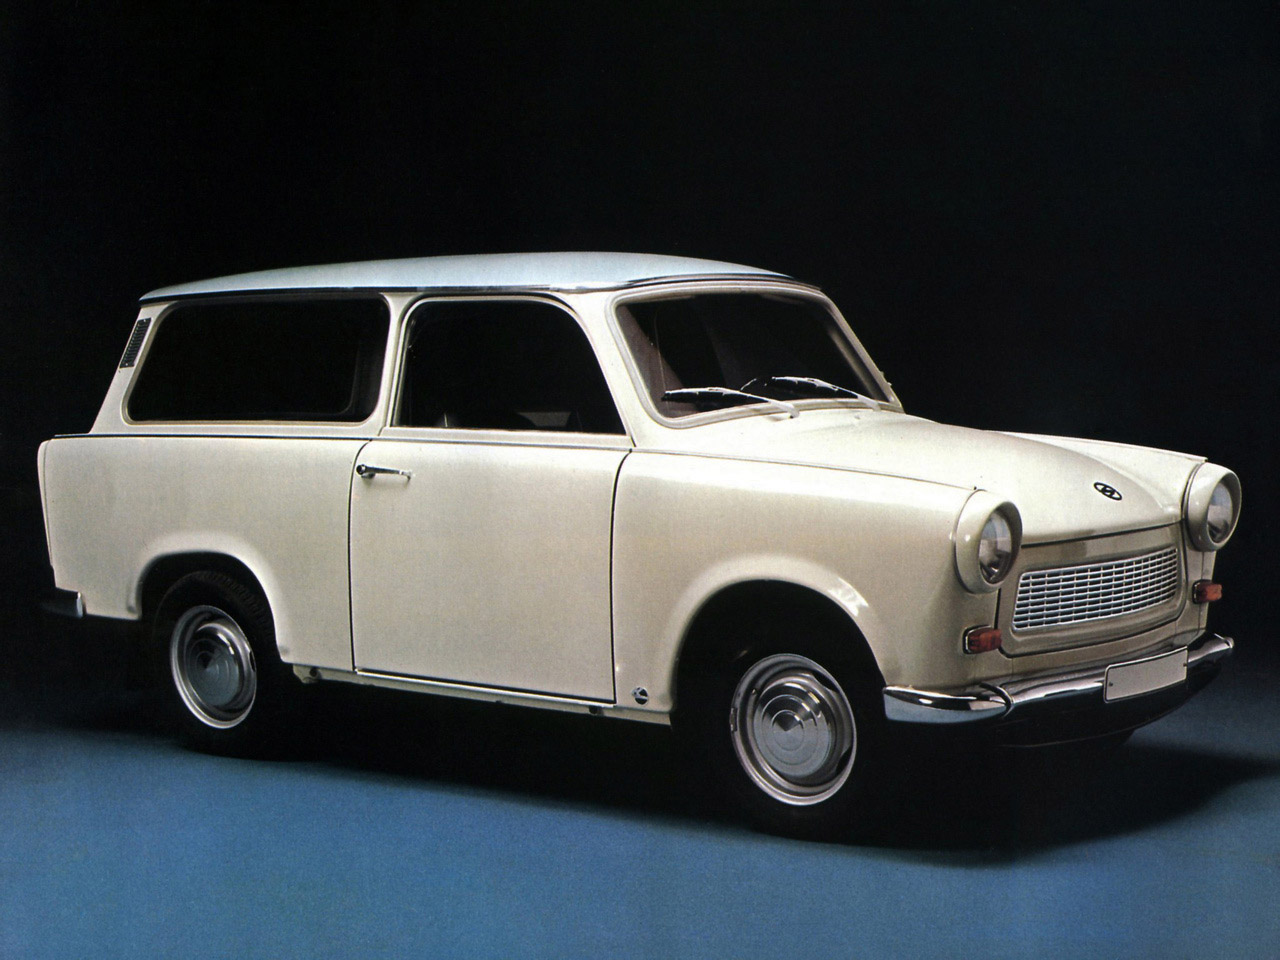 trabant 601 universal 1965 1989 trabant 601 universal 1965 1989 photo 01 car in pictures car. Black Bedroom Furniture Sets. Home Design Ideas